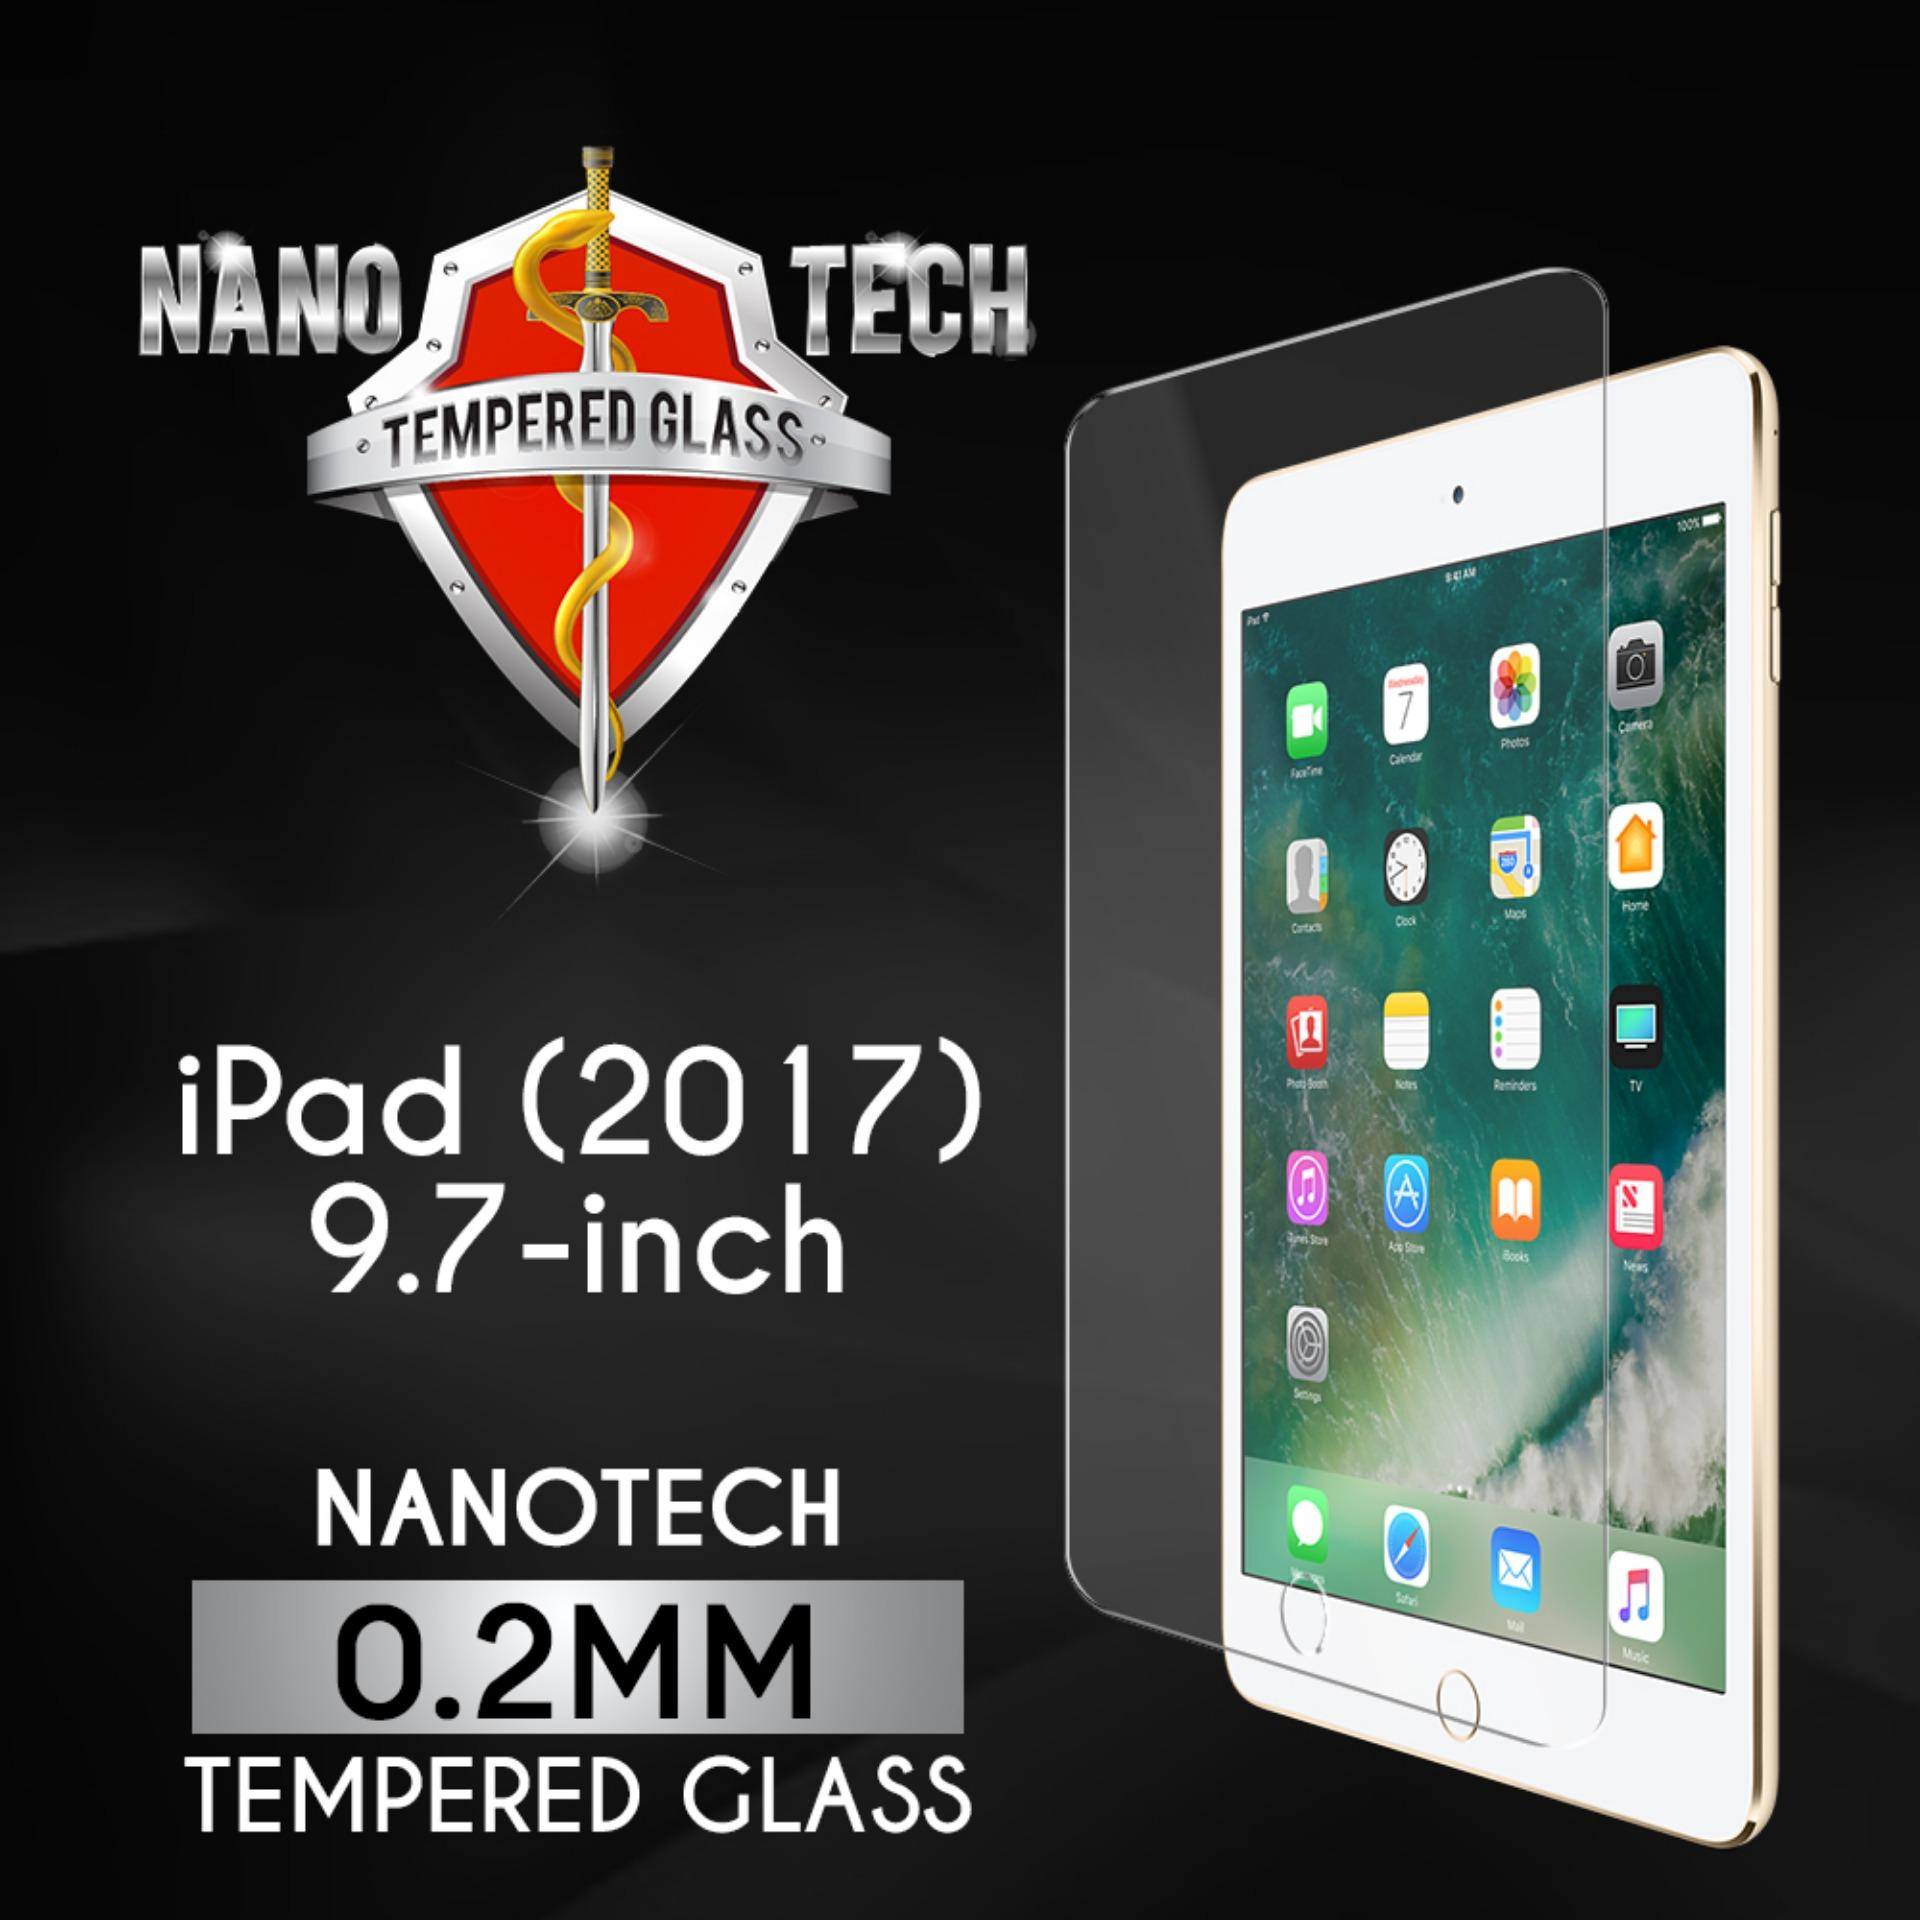 Nanotech iPad (2017/2018) 9.7″ Tempered Glass Screen Protector [0.2MM][Full Coverage]